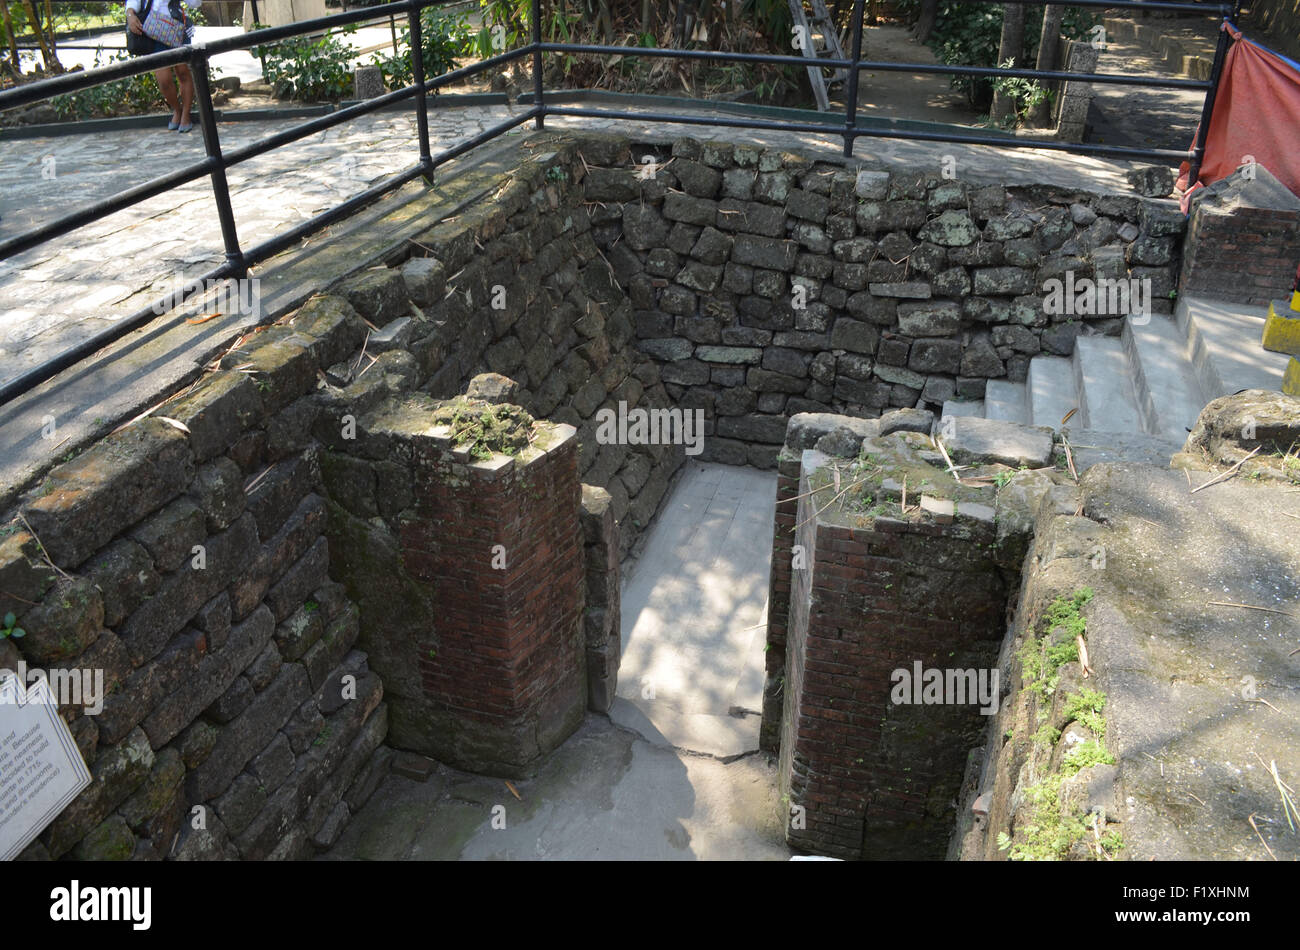 The cell in which Jose Rizal spent some of his time in Fort Santiago, Manila. He was imprisoned here before his - Stock Image